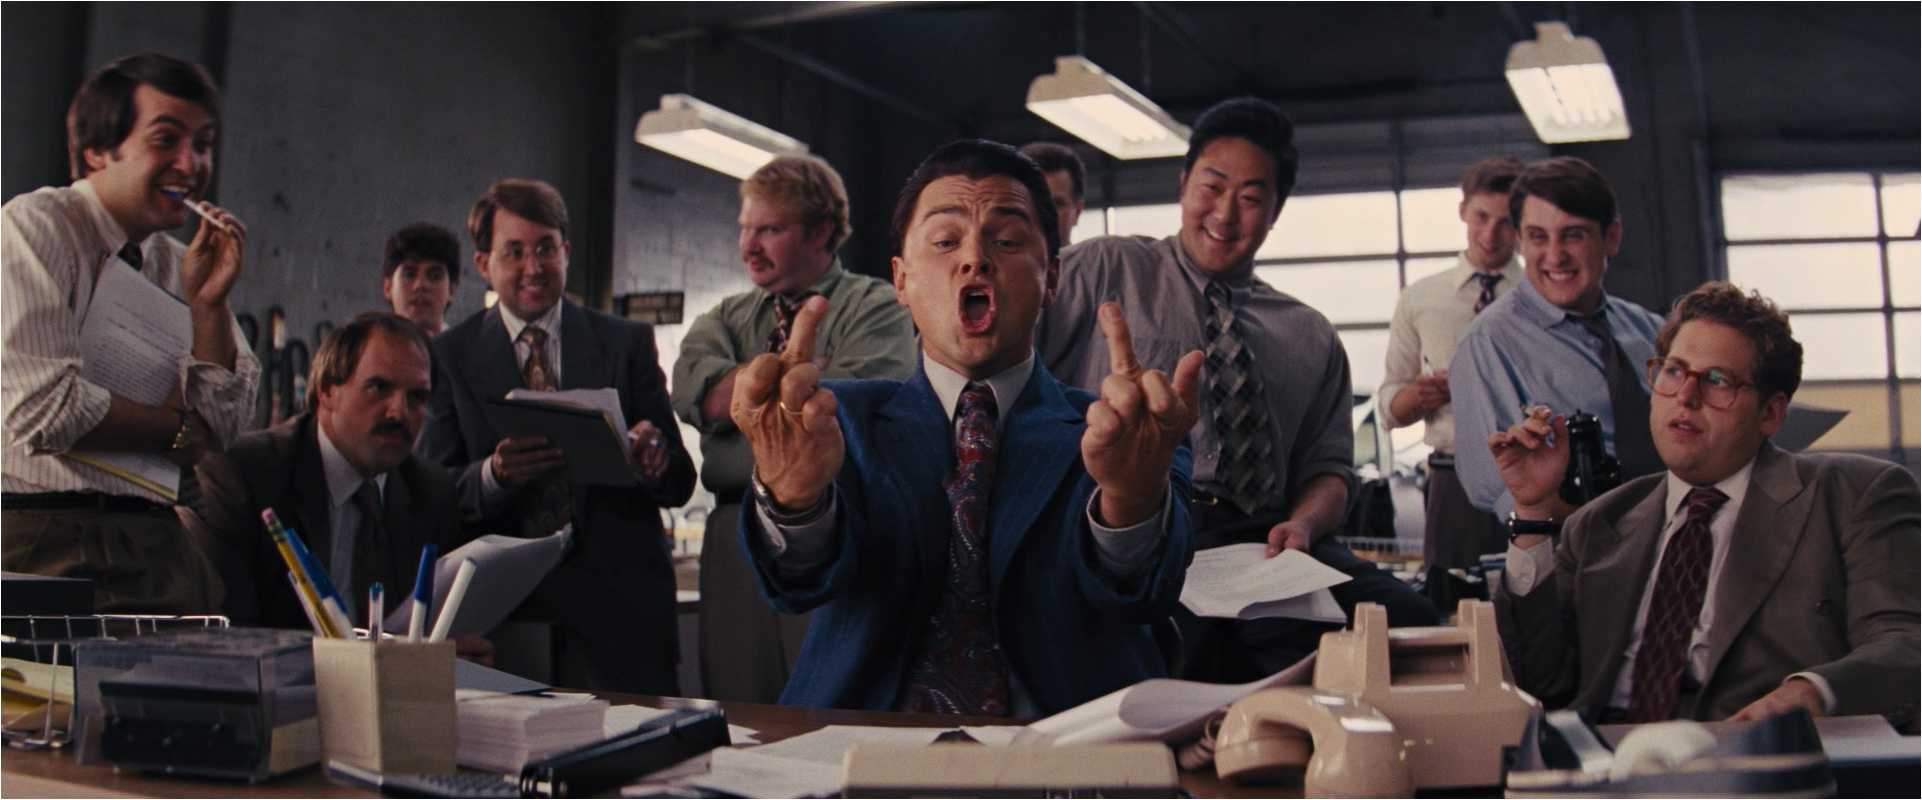 Download In Original Resolution Wolf Of Wall Street 201430